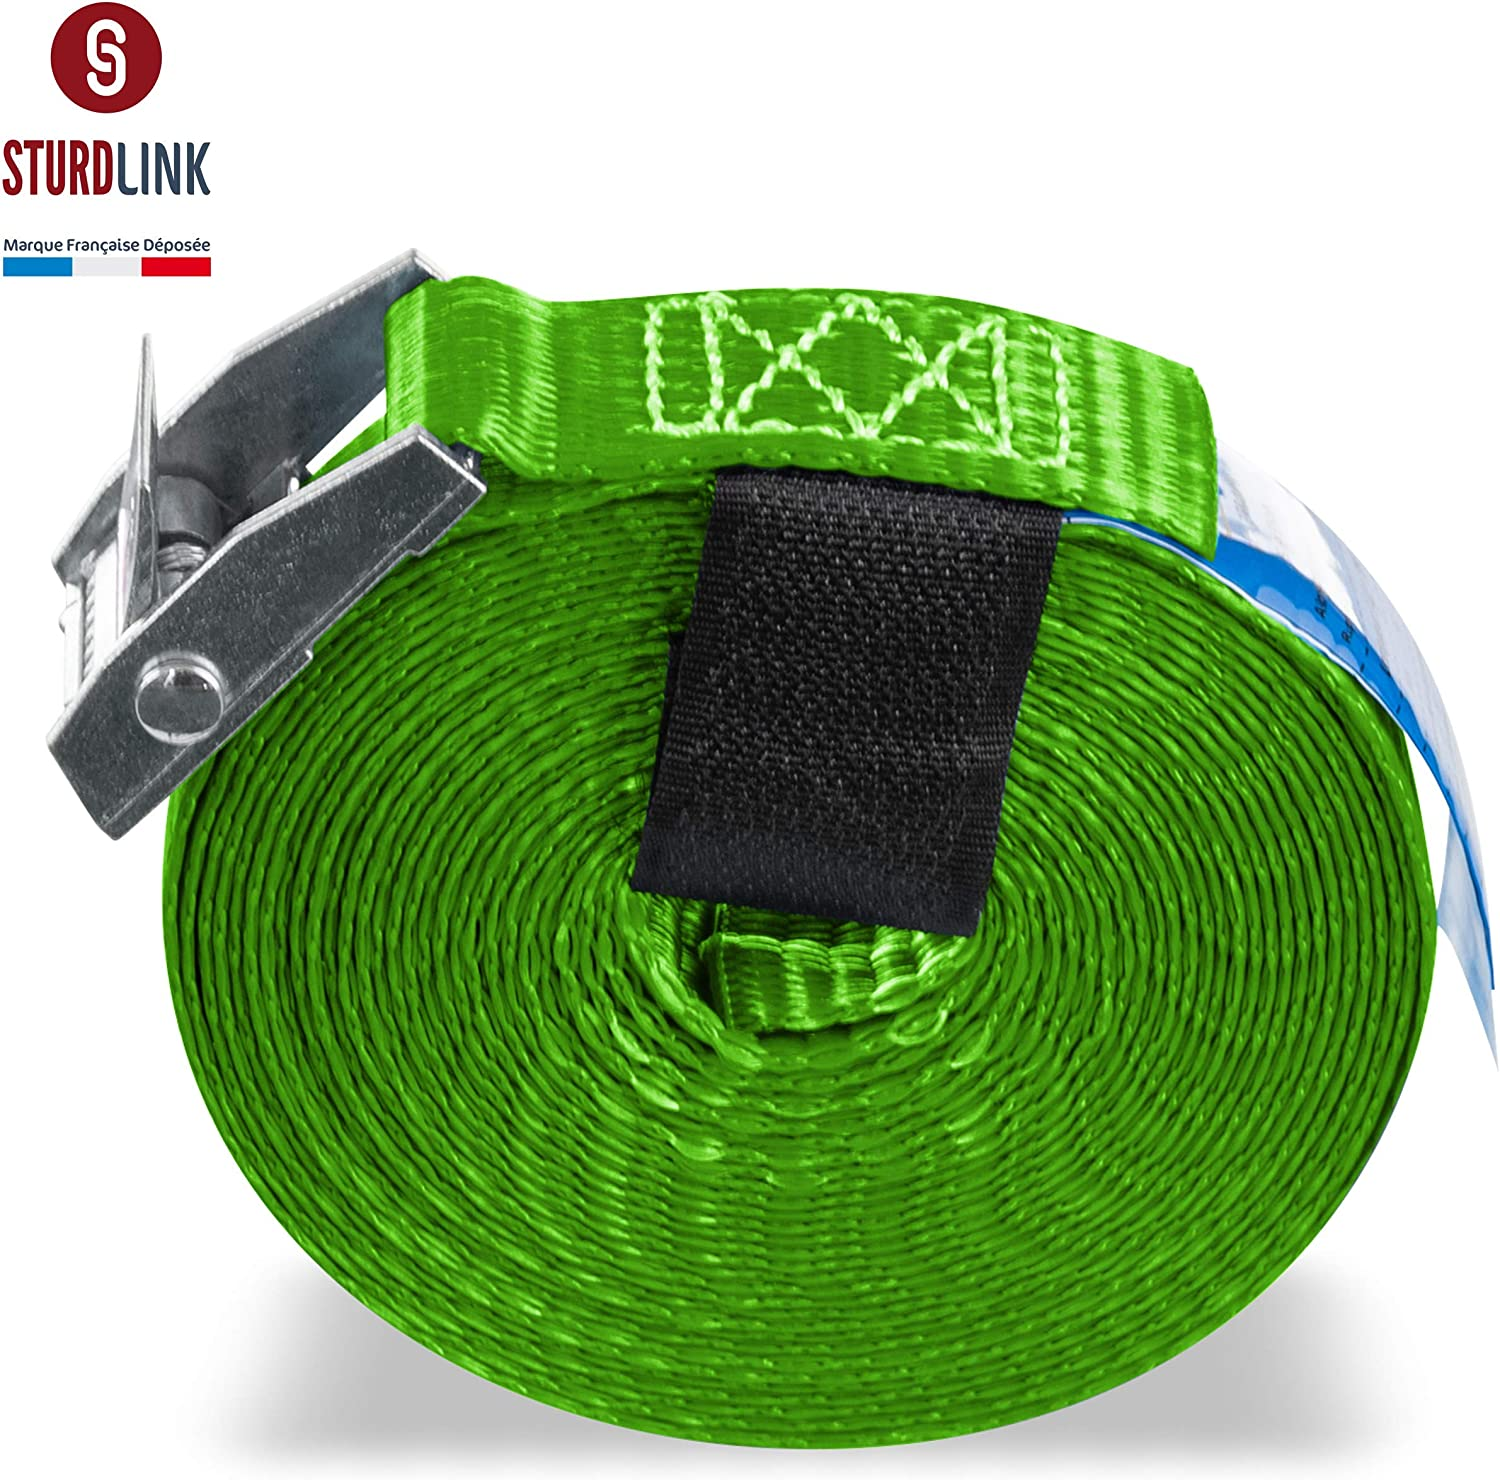 luggage Bag for Fixing and Tightening on Bike Rack Motorcycle Moving Trailer Trunk and Roof Bars Car Sturdlink Pack of 4 Lashing Straps 25mm 250kg With Tie Down Cam Buckle and Velcro 4m Green